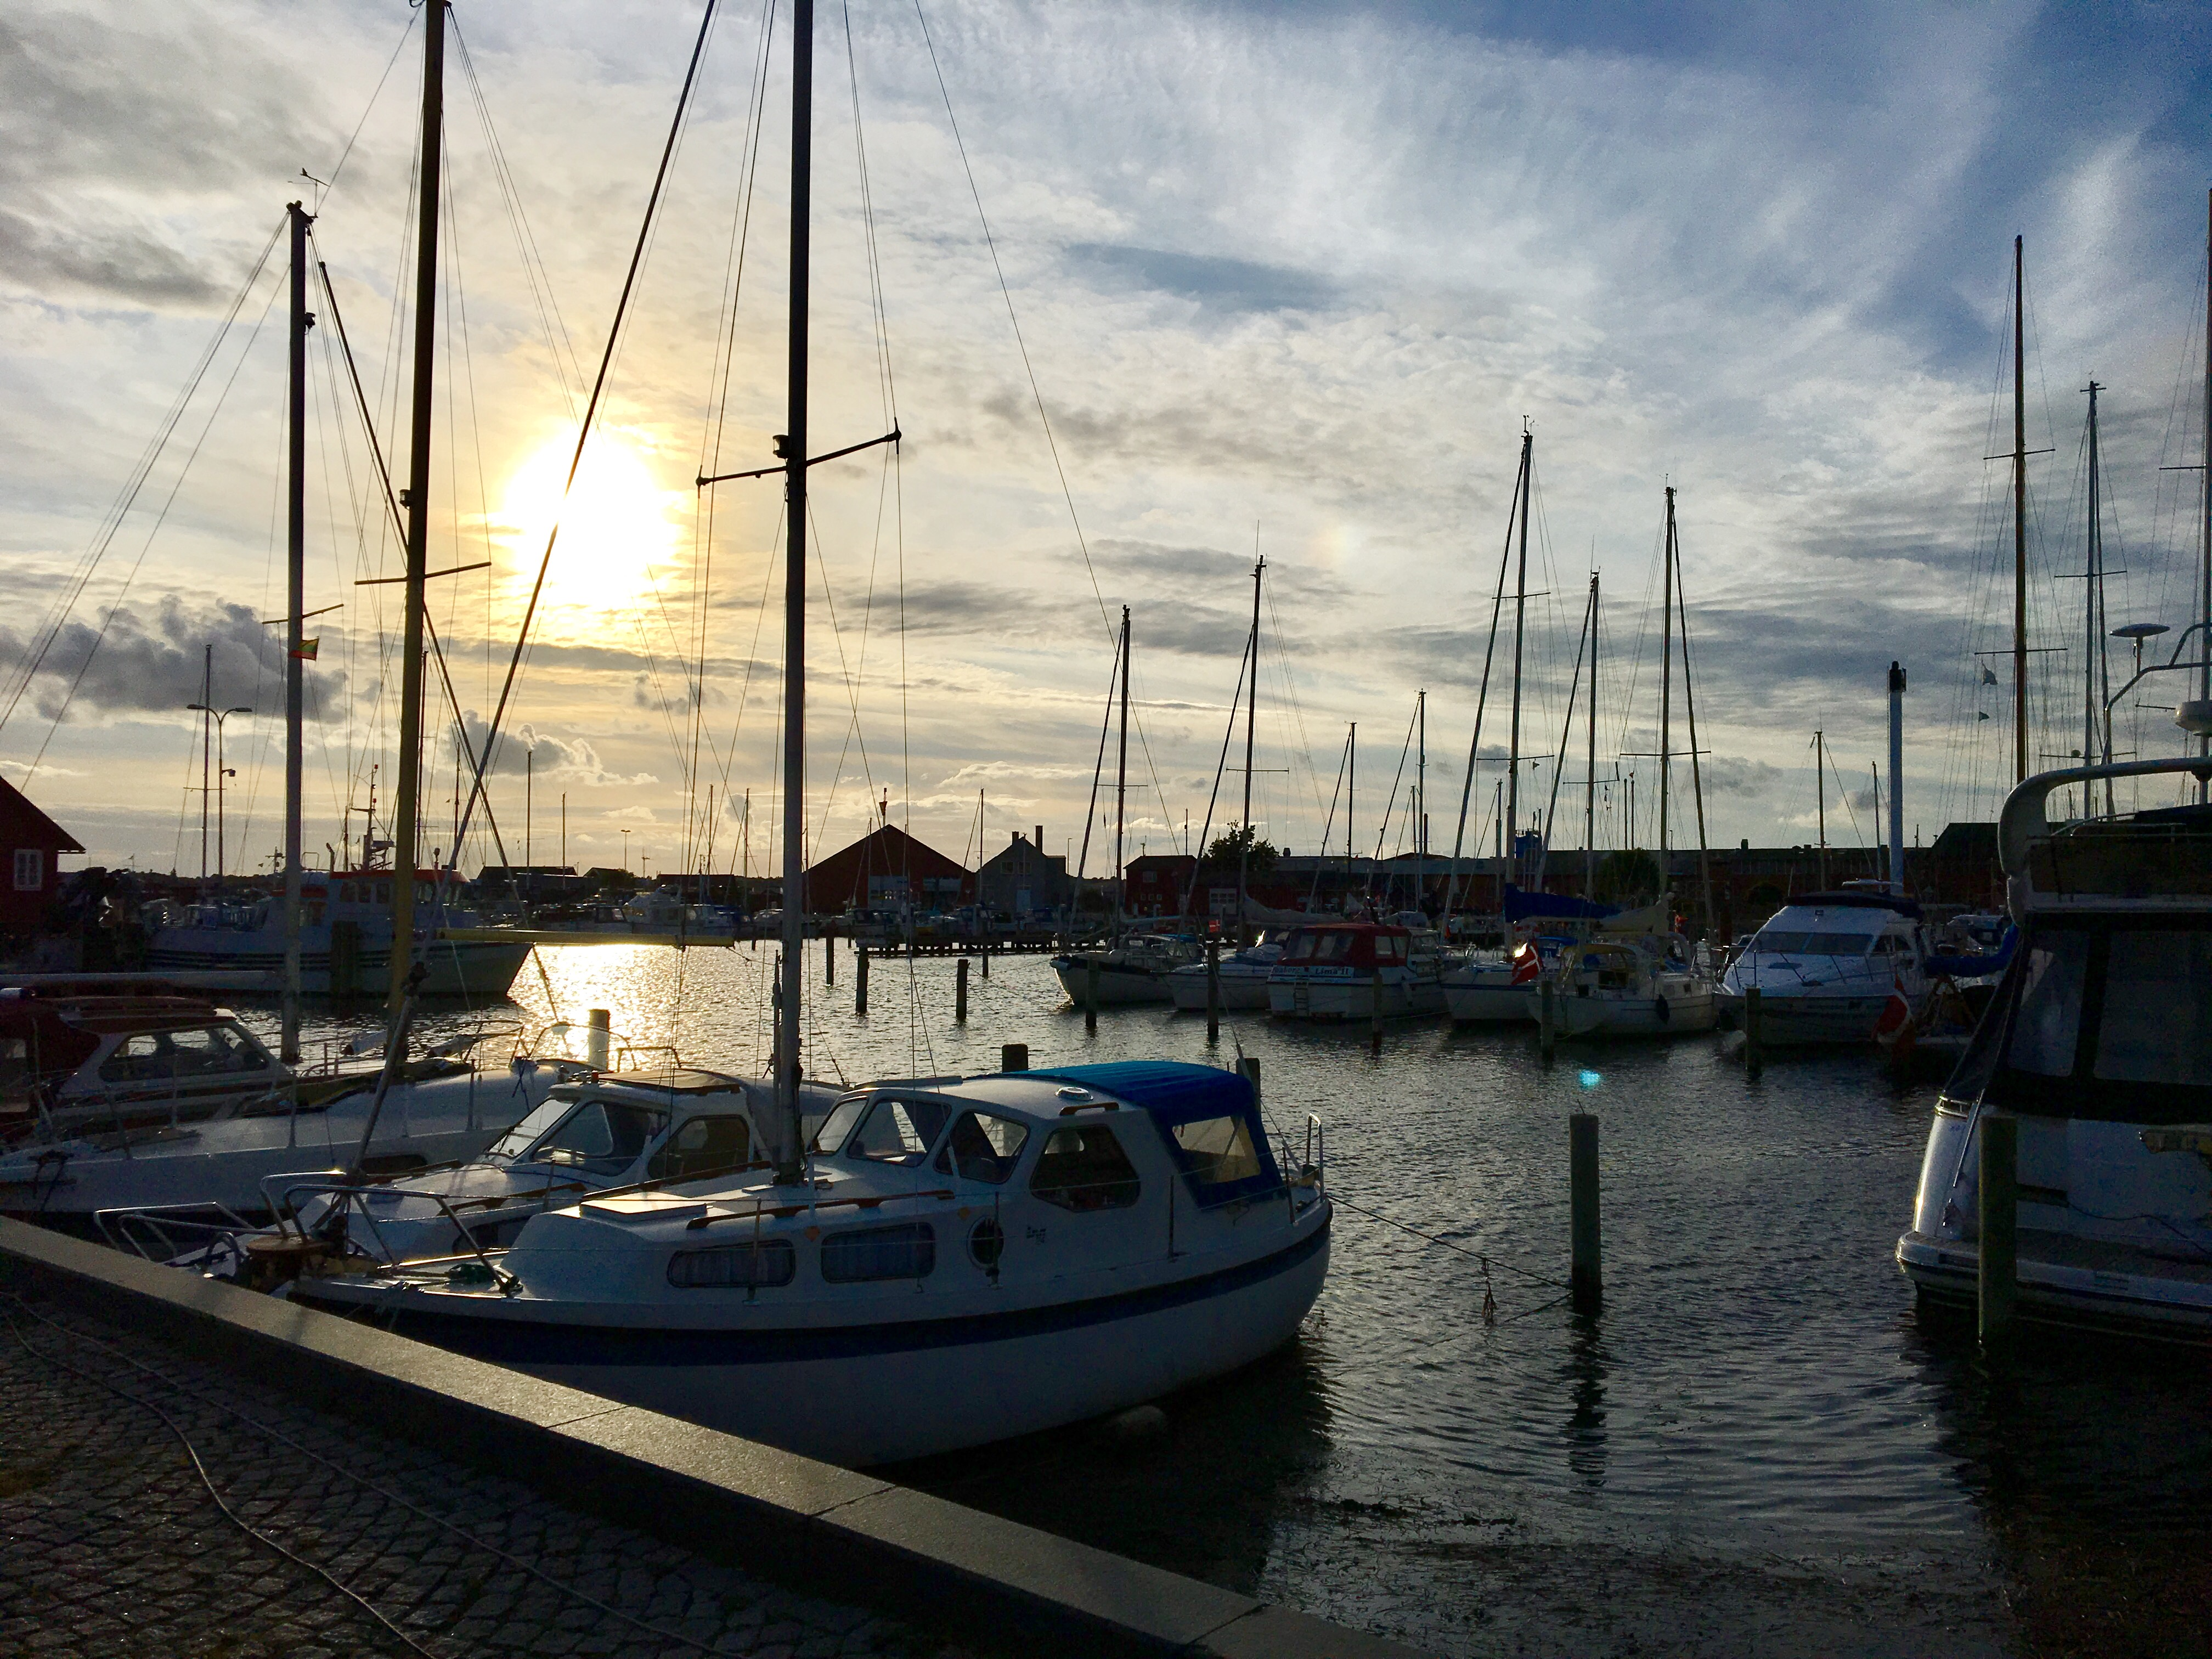 Faarborg Marina at sun set